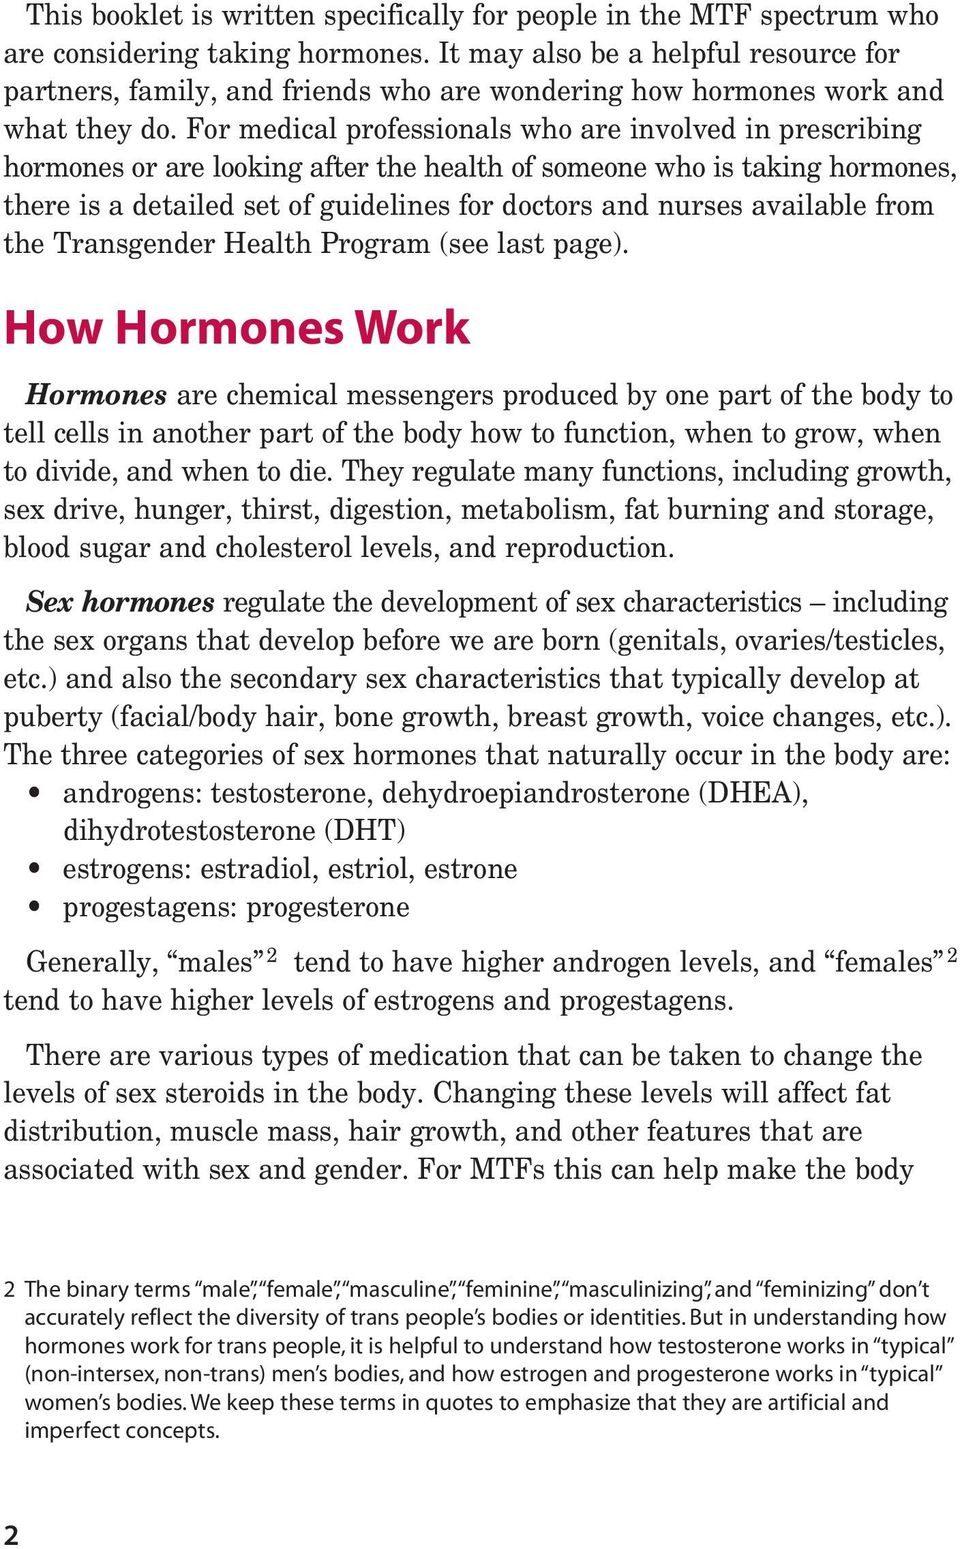 For medical professionals who are involved in prescribing hormones or are looking after the health of someone who is taking hormones, there is a detailed set of guidelines for doctors and nurses